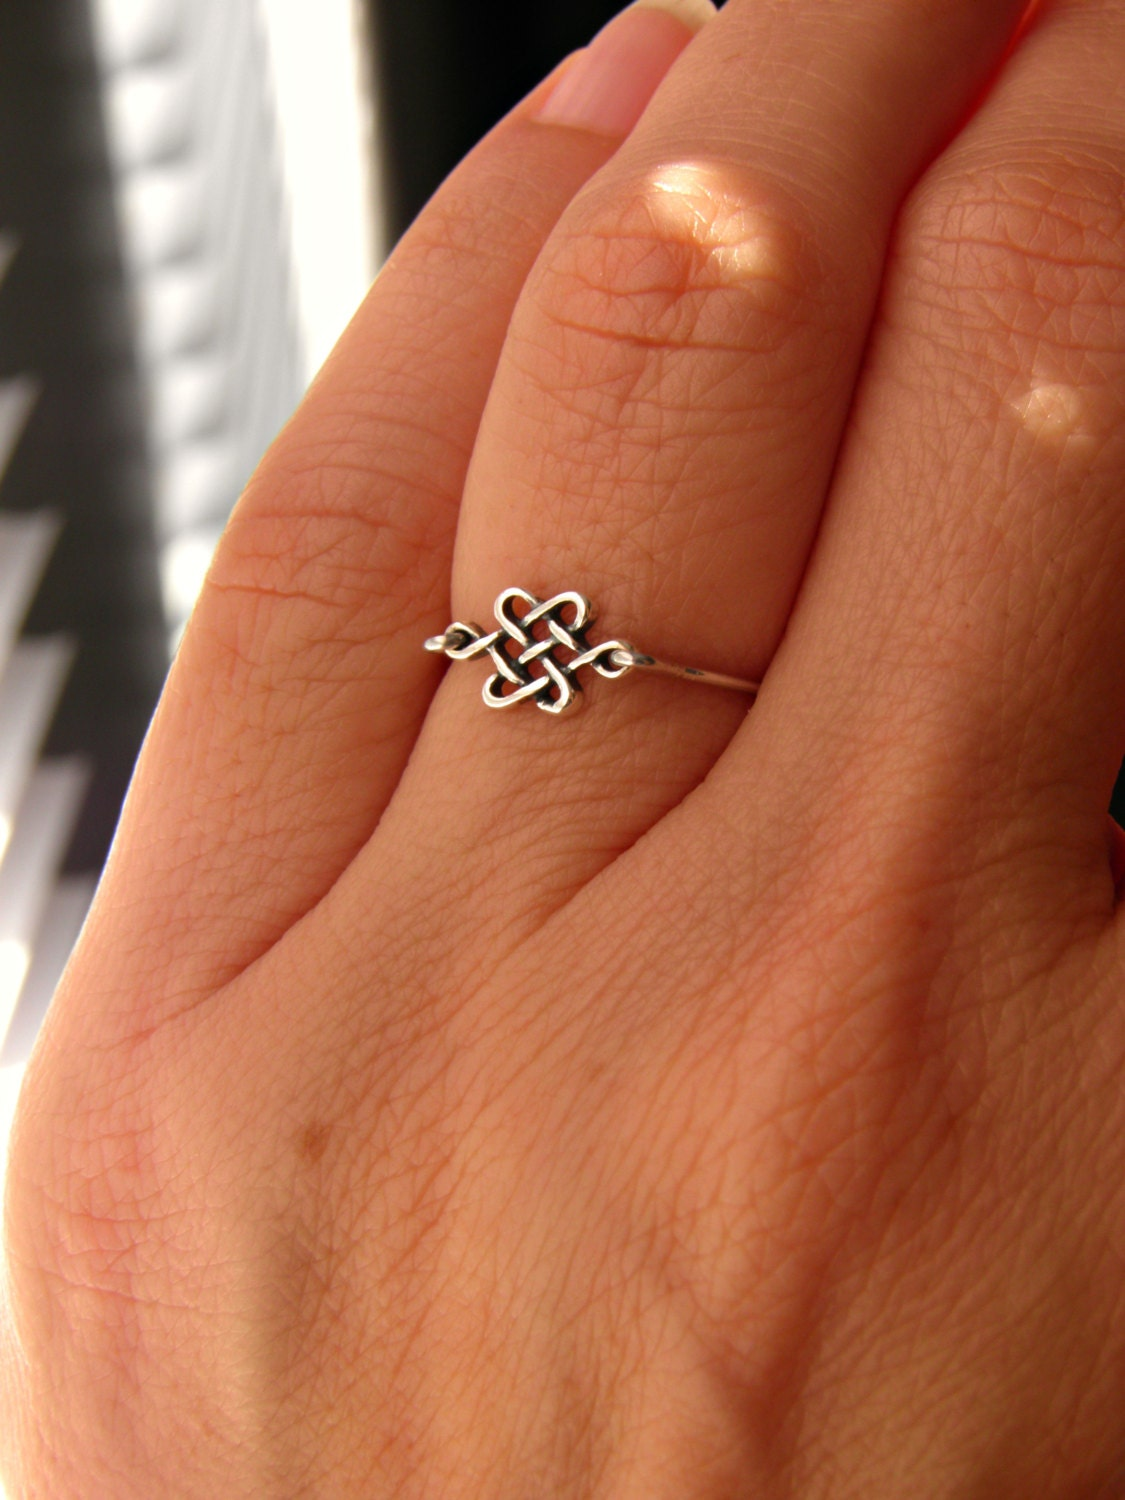 Silver celtic knot ring skinny ring stack stacking ring for Celtic ring tattoos